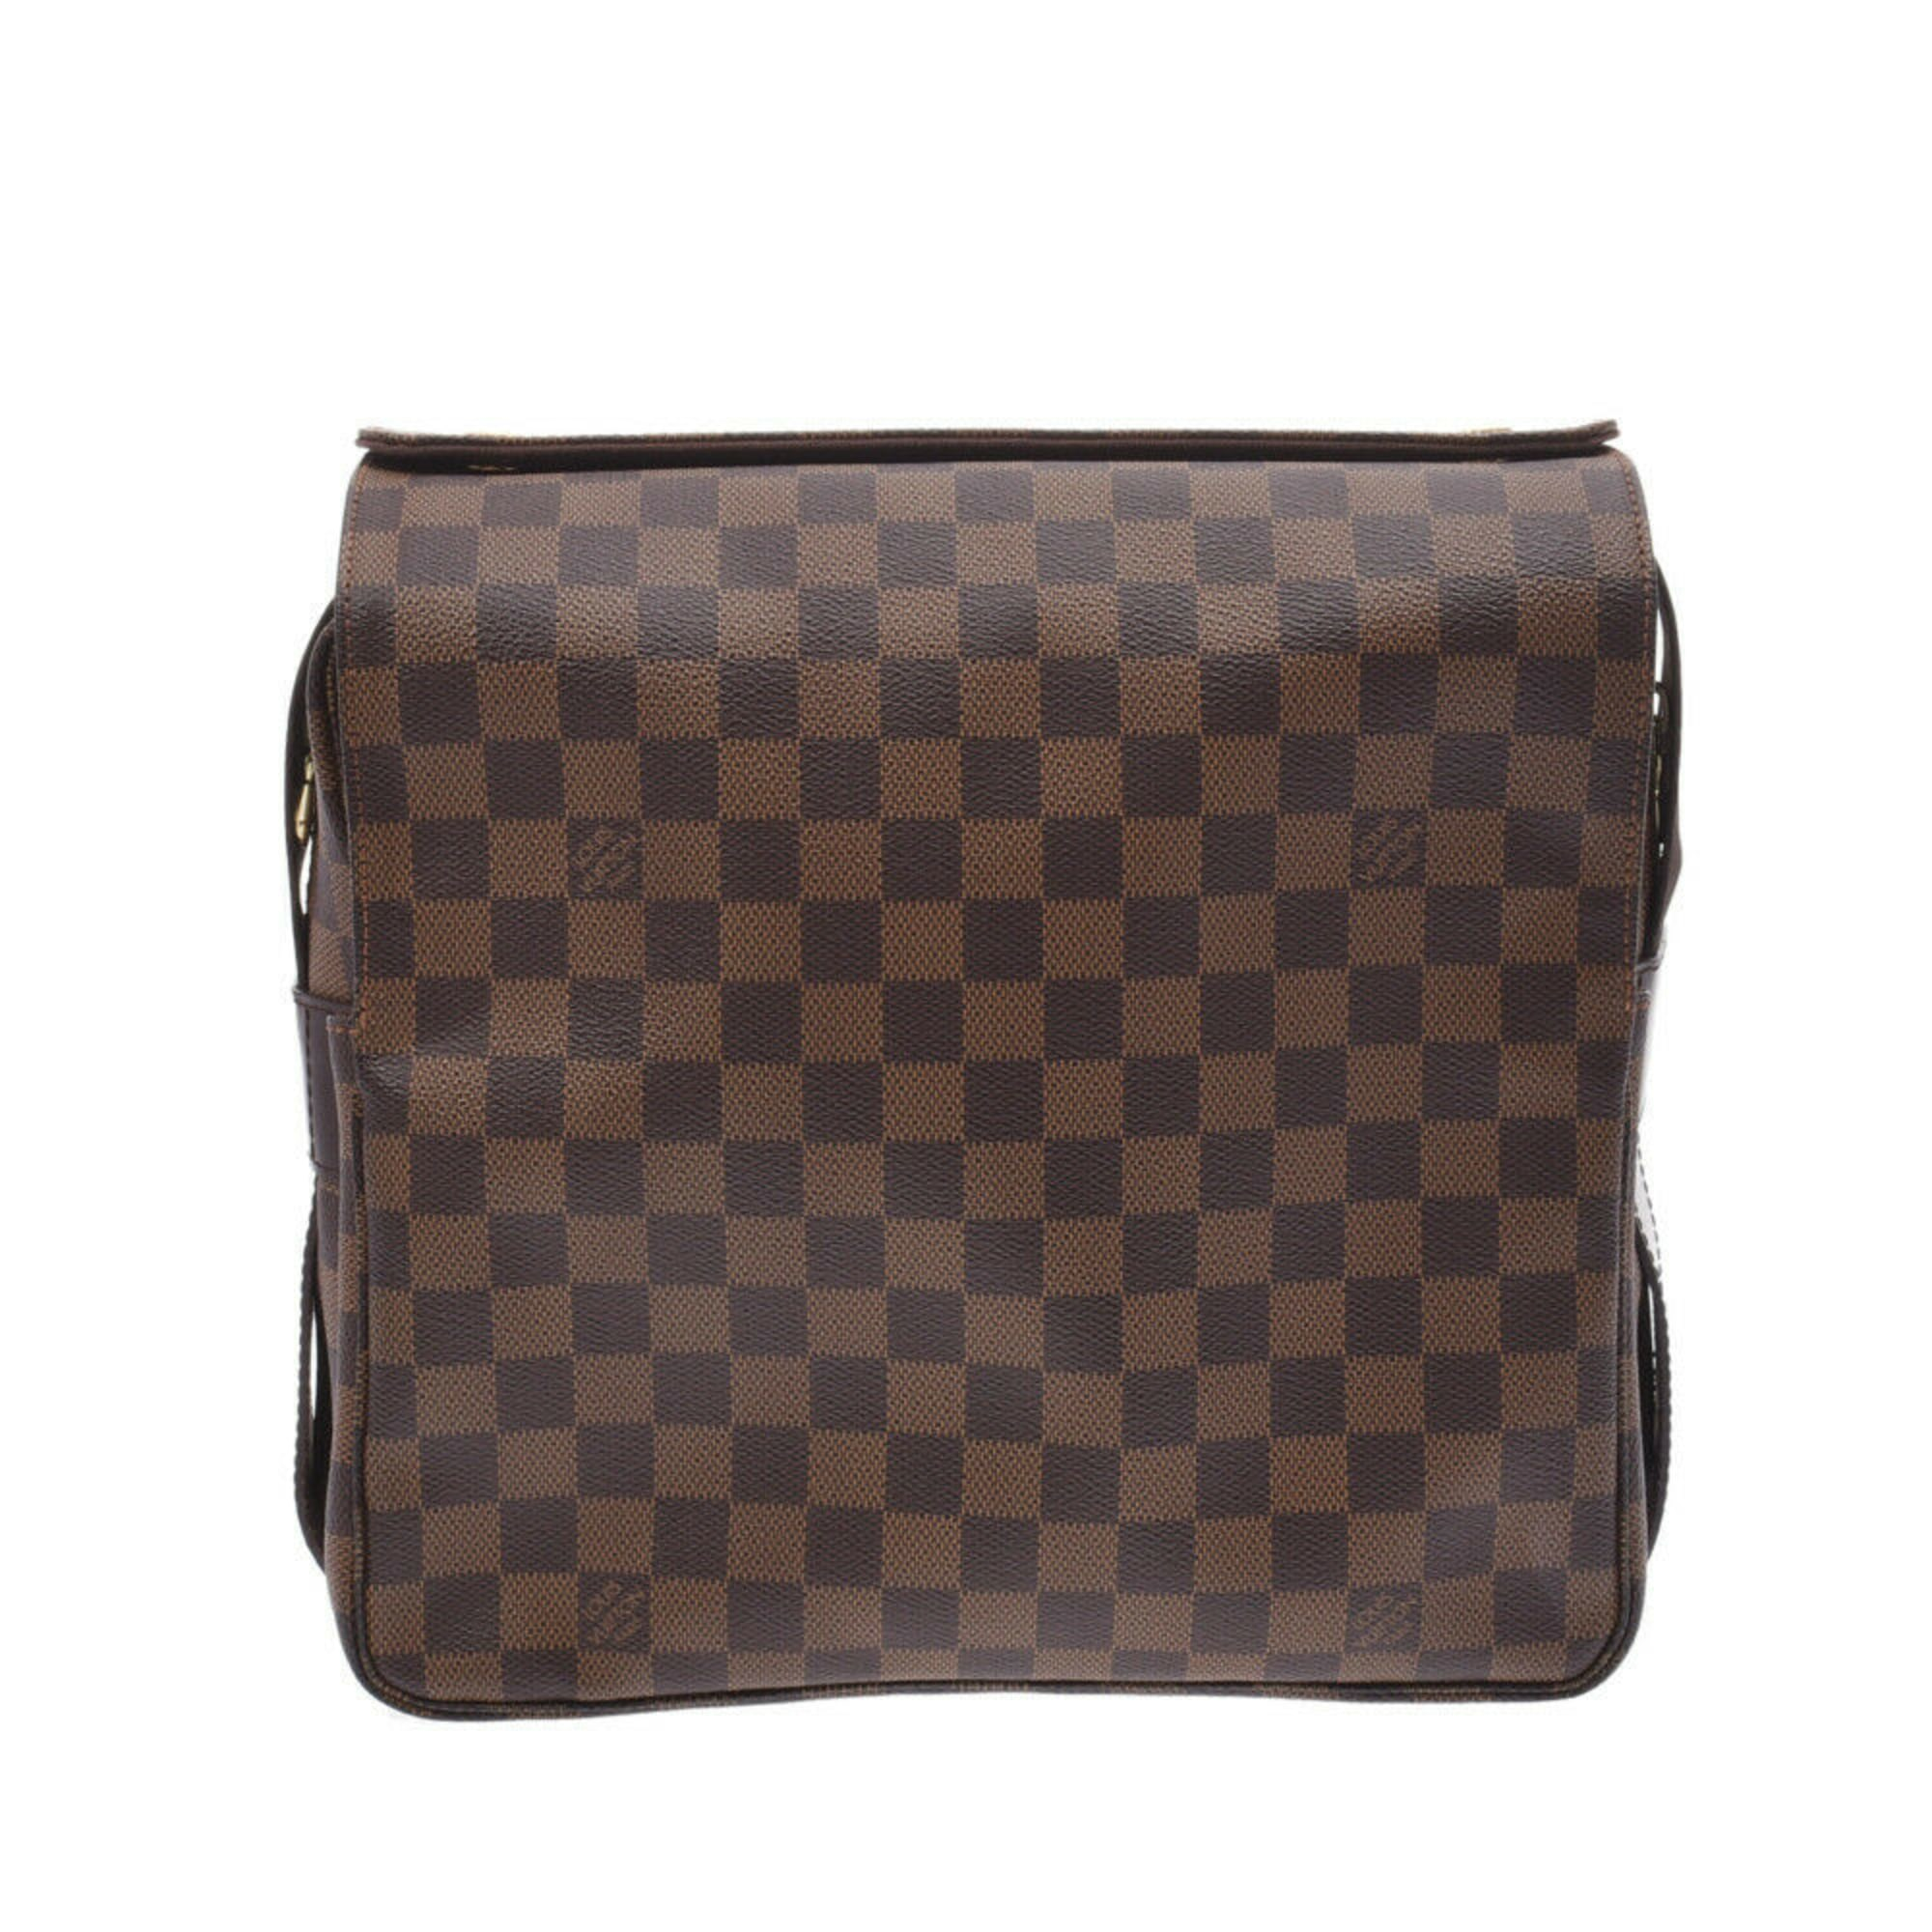 Sac en bandoulière LOUIS VUITTON Marron